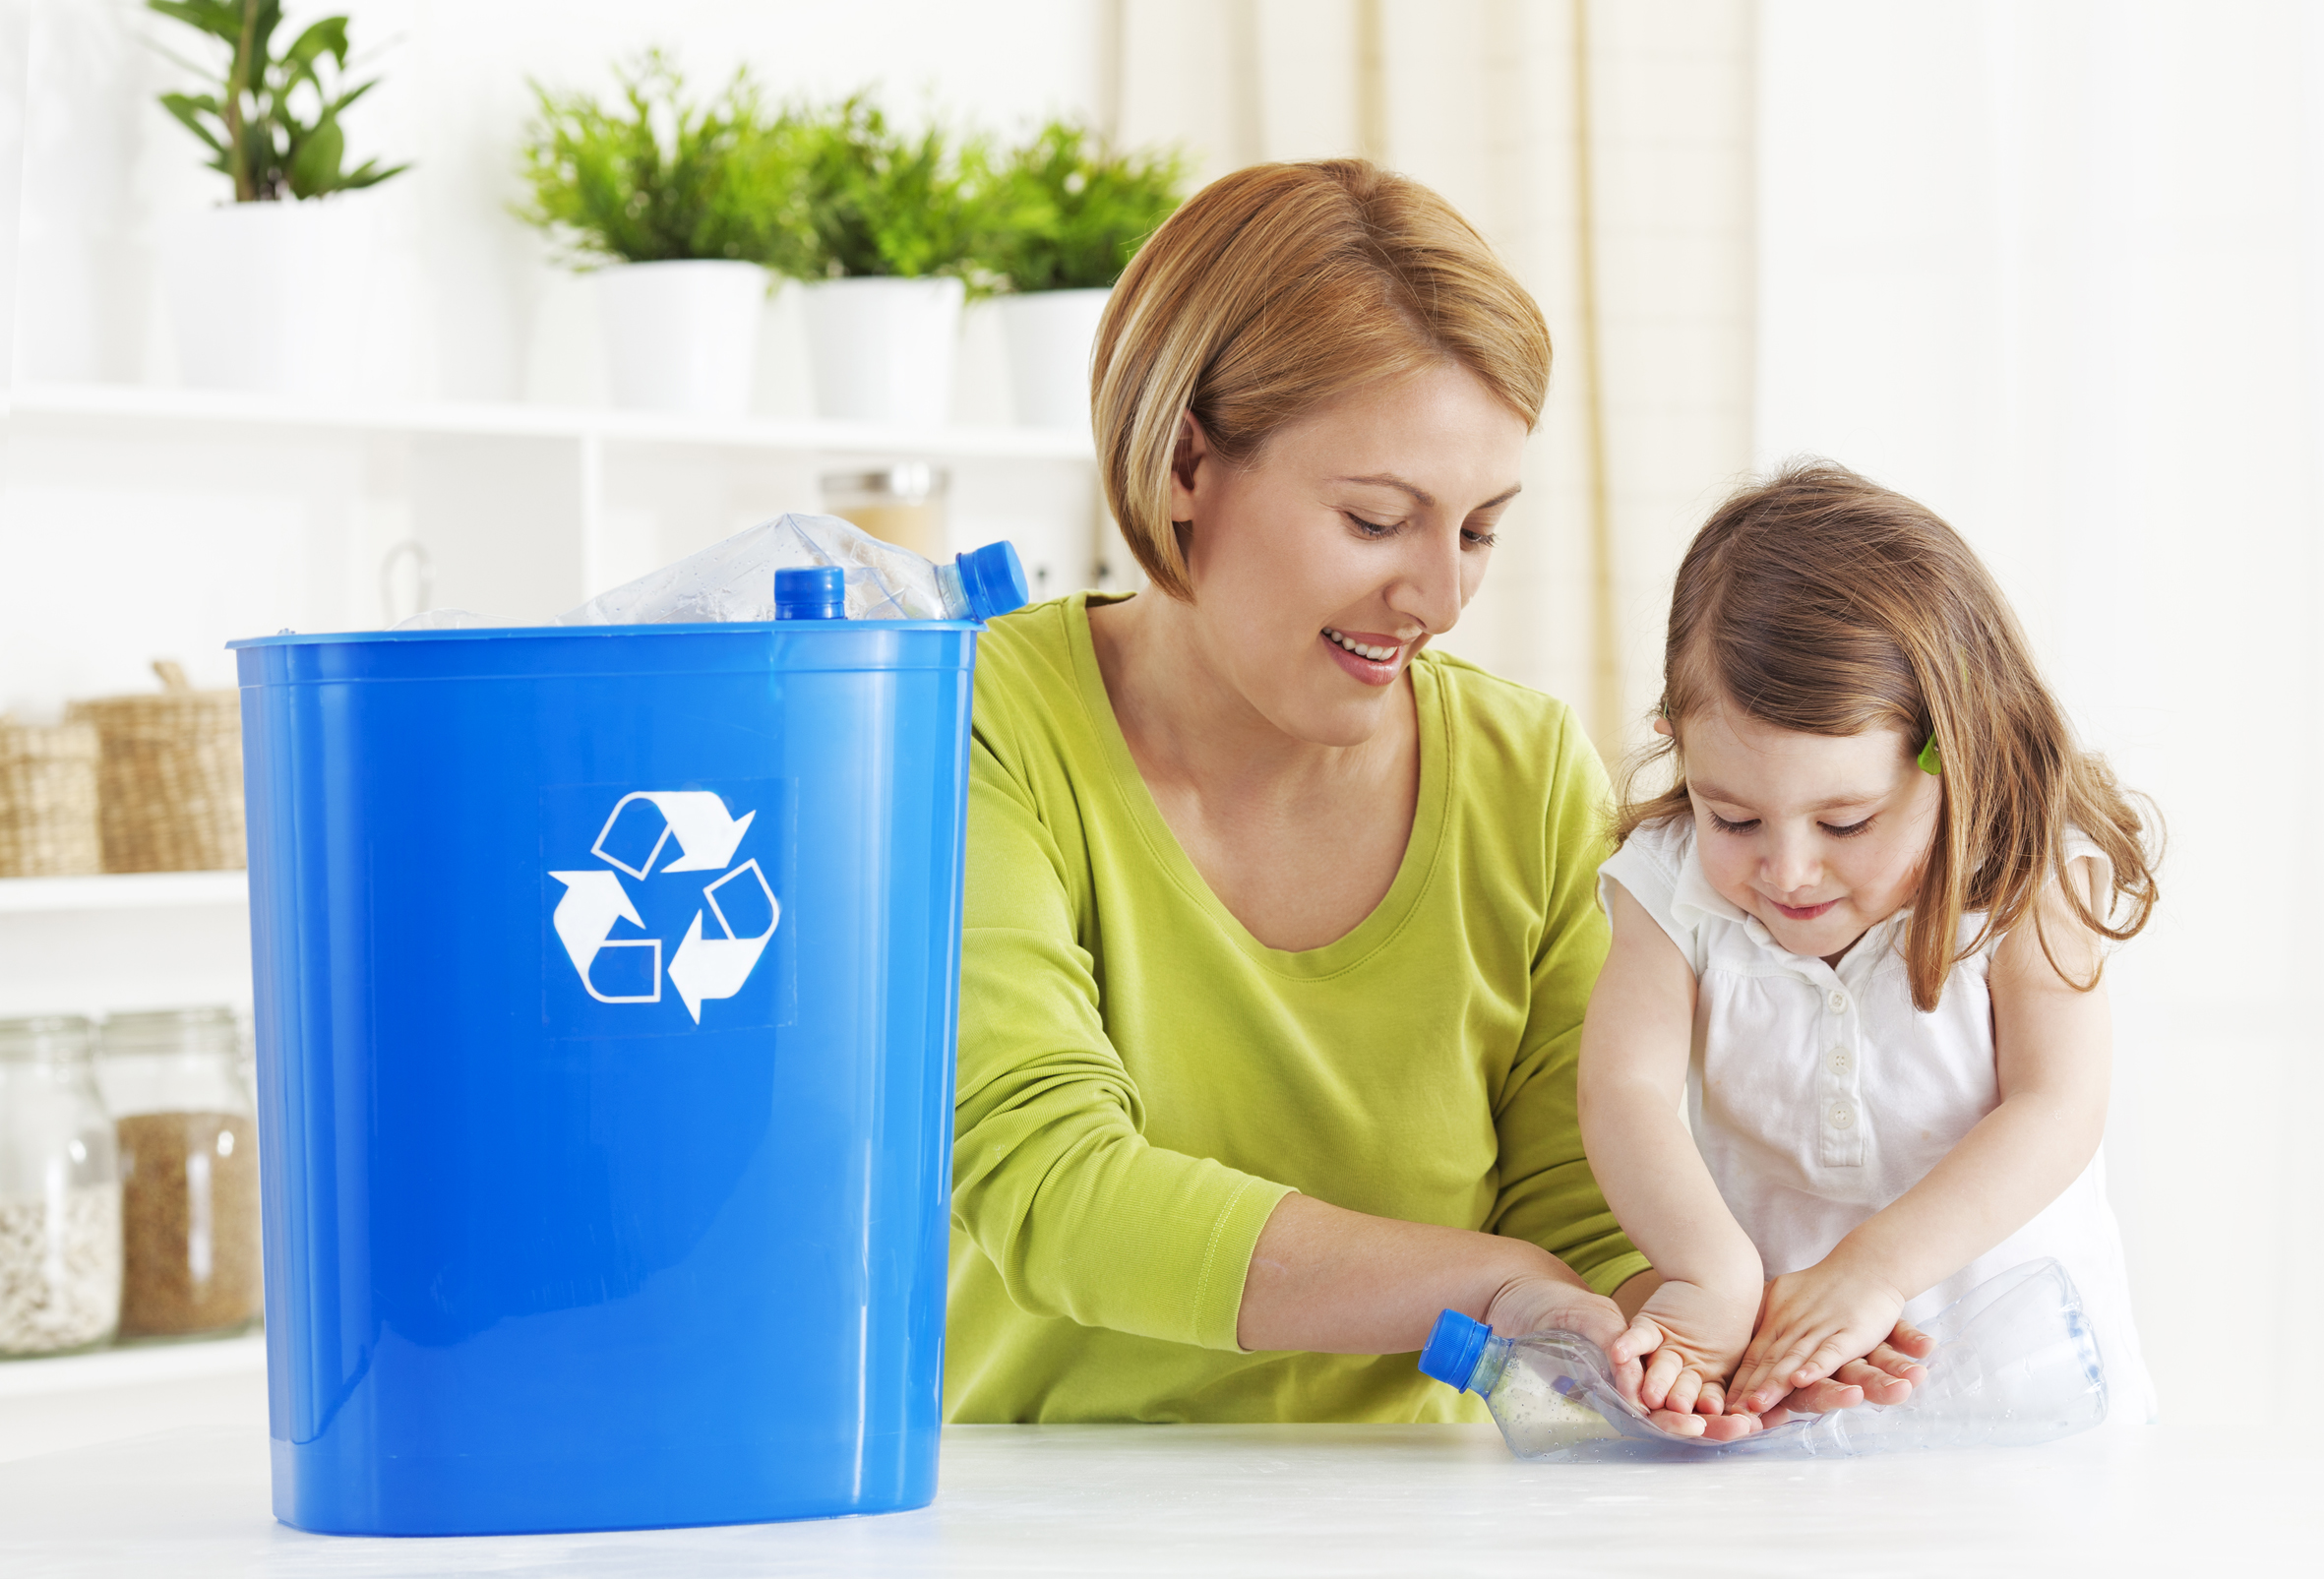 Make Recycling Easy At Home